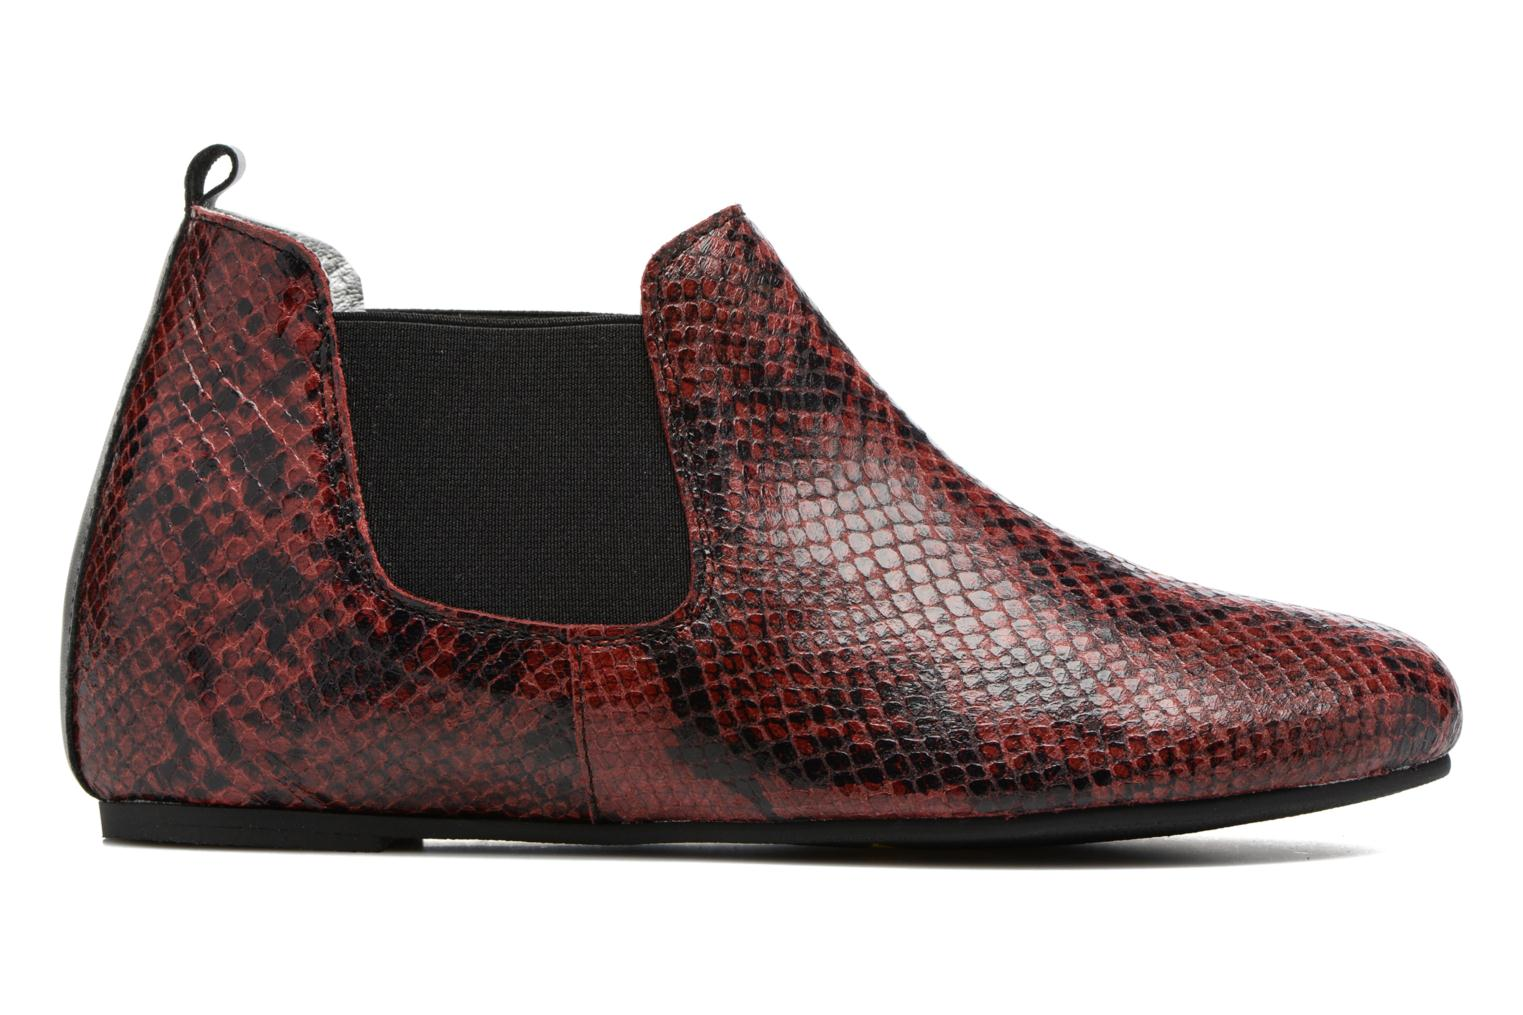 Cult snake Bordeaux